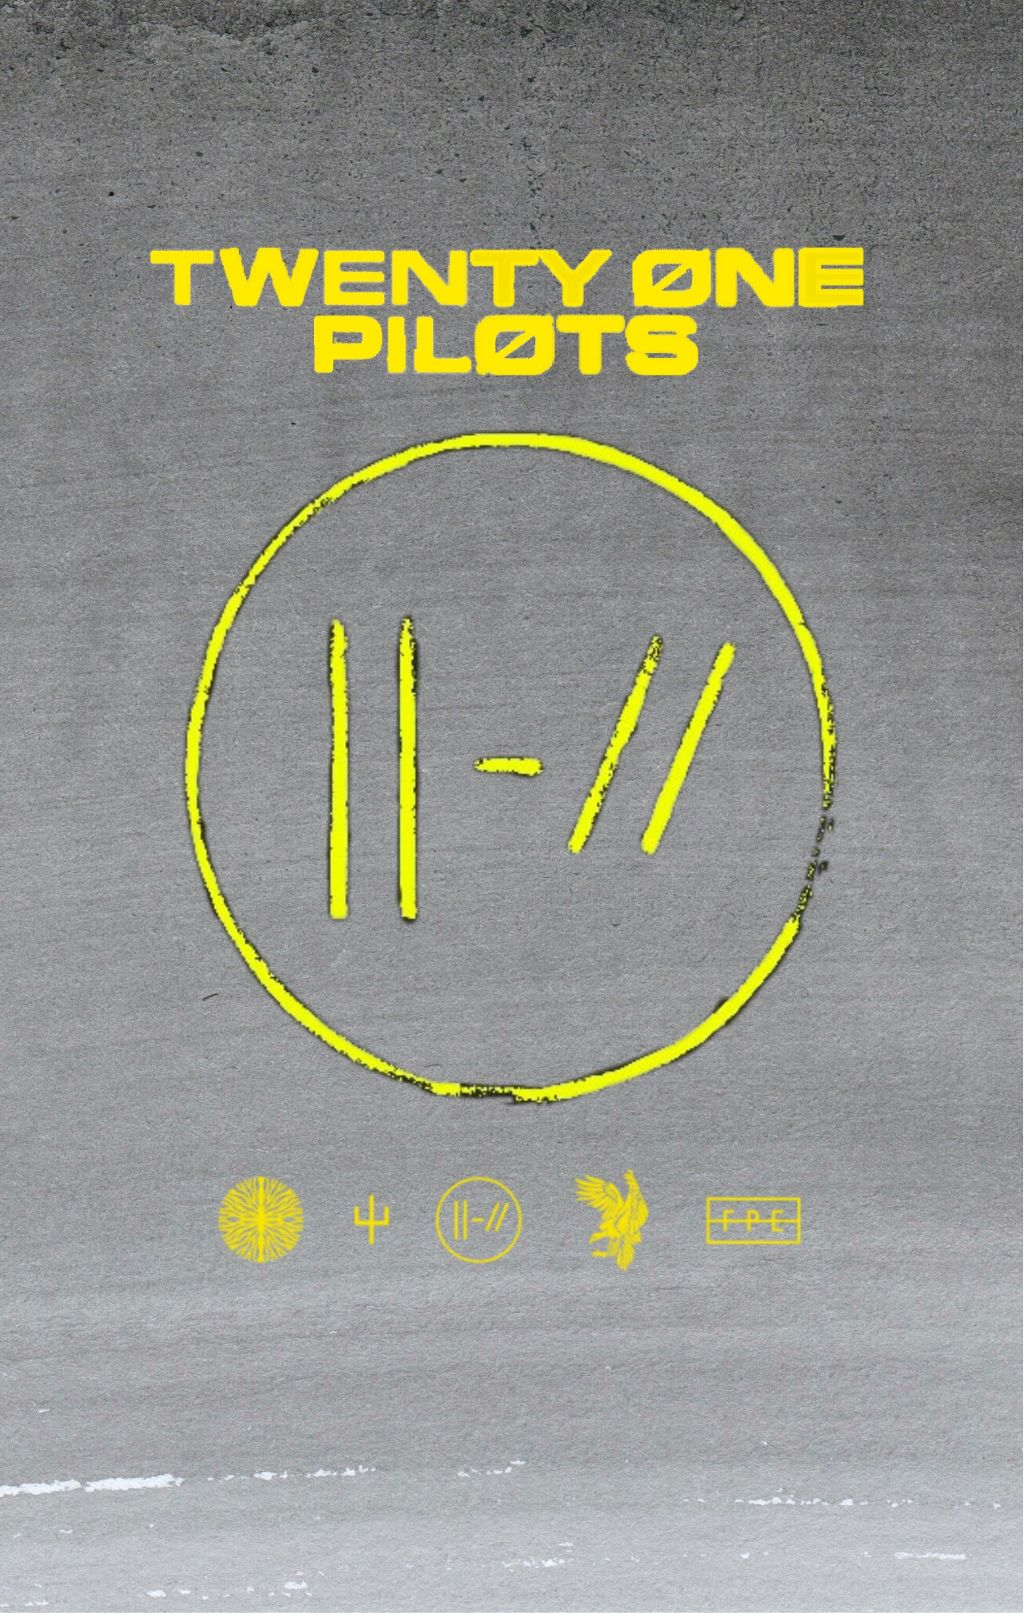 Just Another Twenty One Pilots Wallpaper They Re Supe